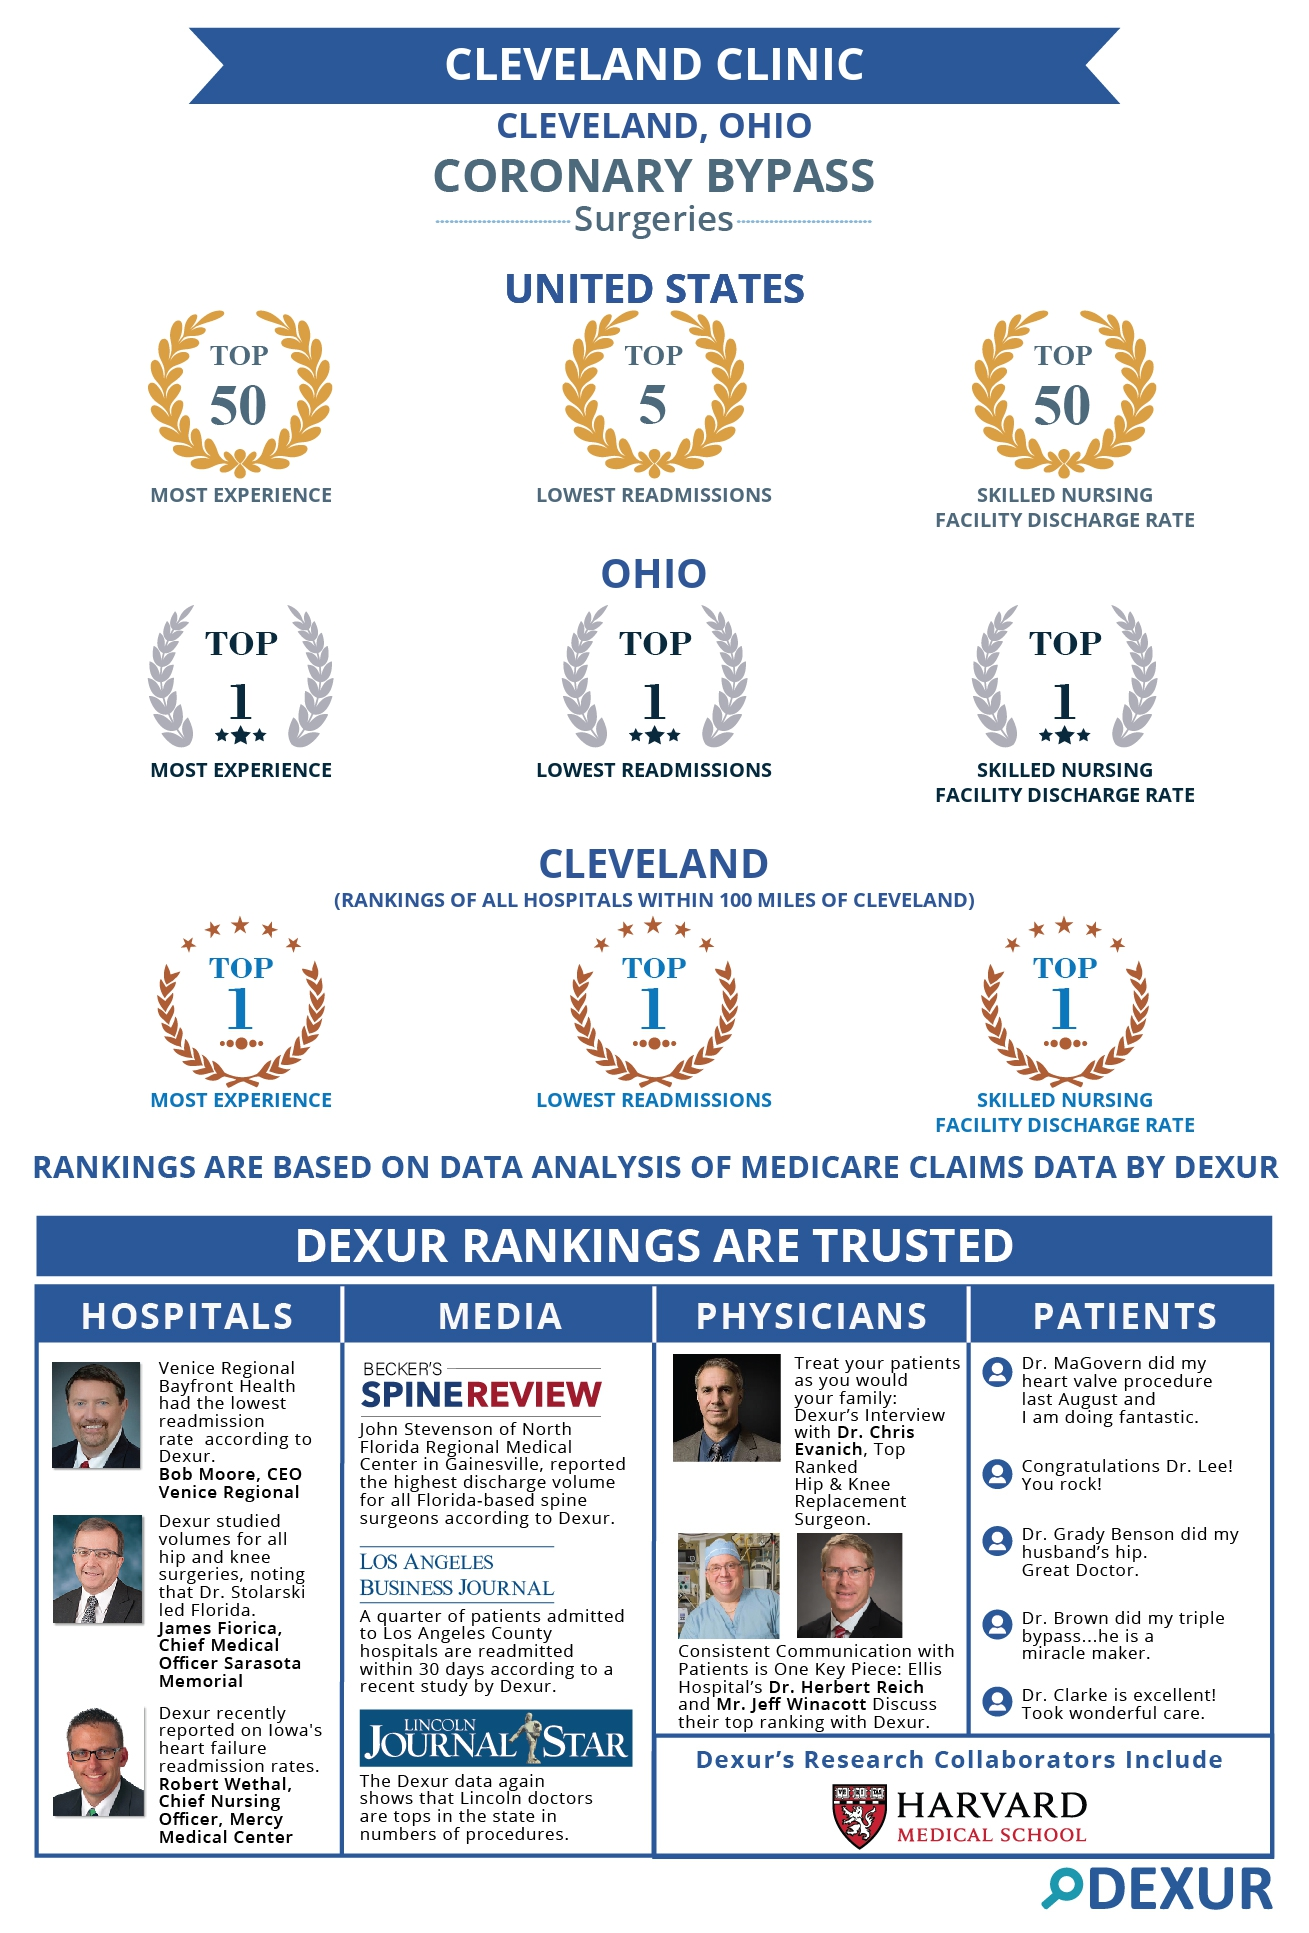 Cleveland Clinic is among the top ranked Hospitals for the